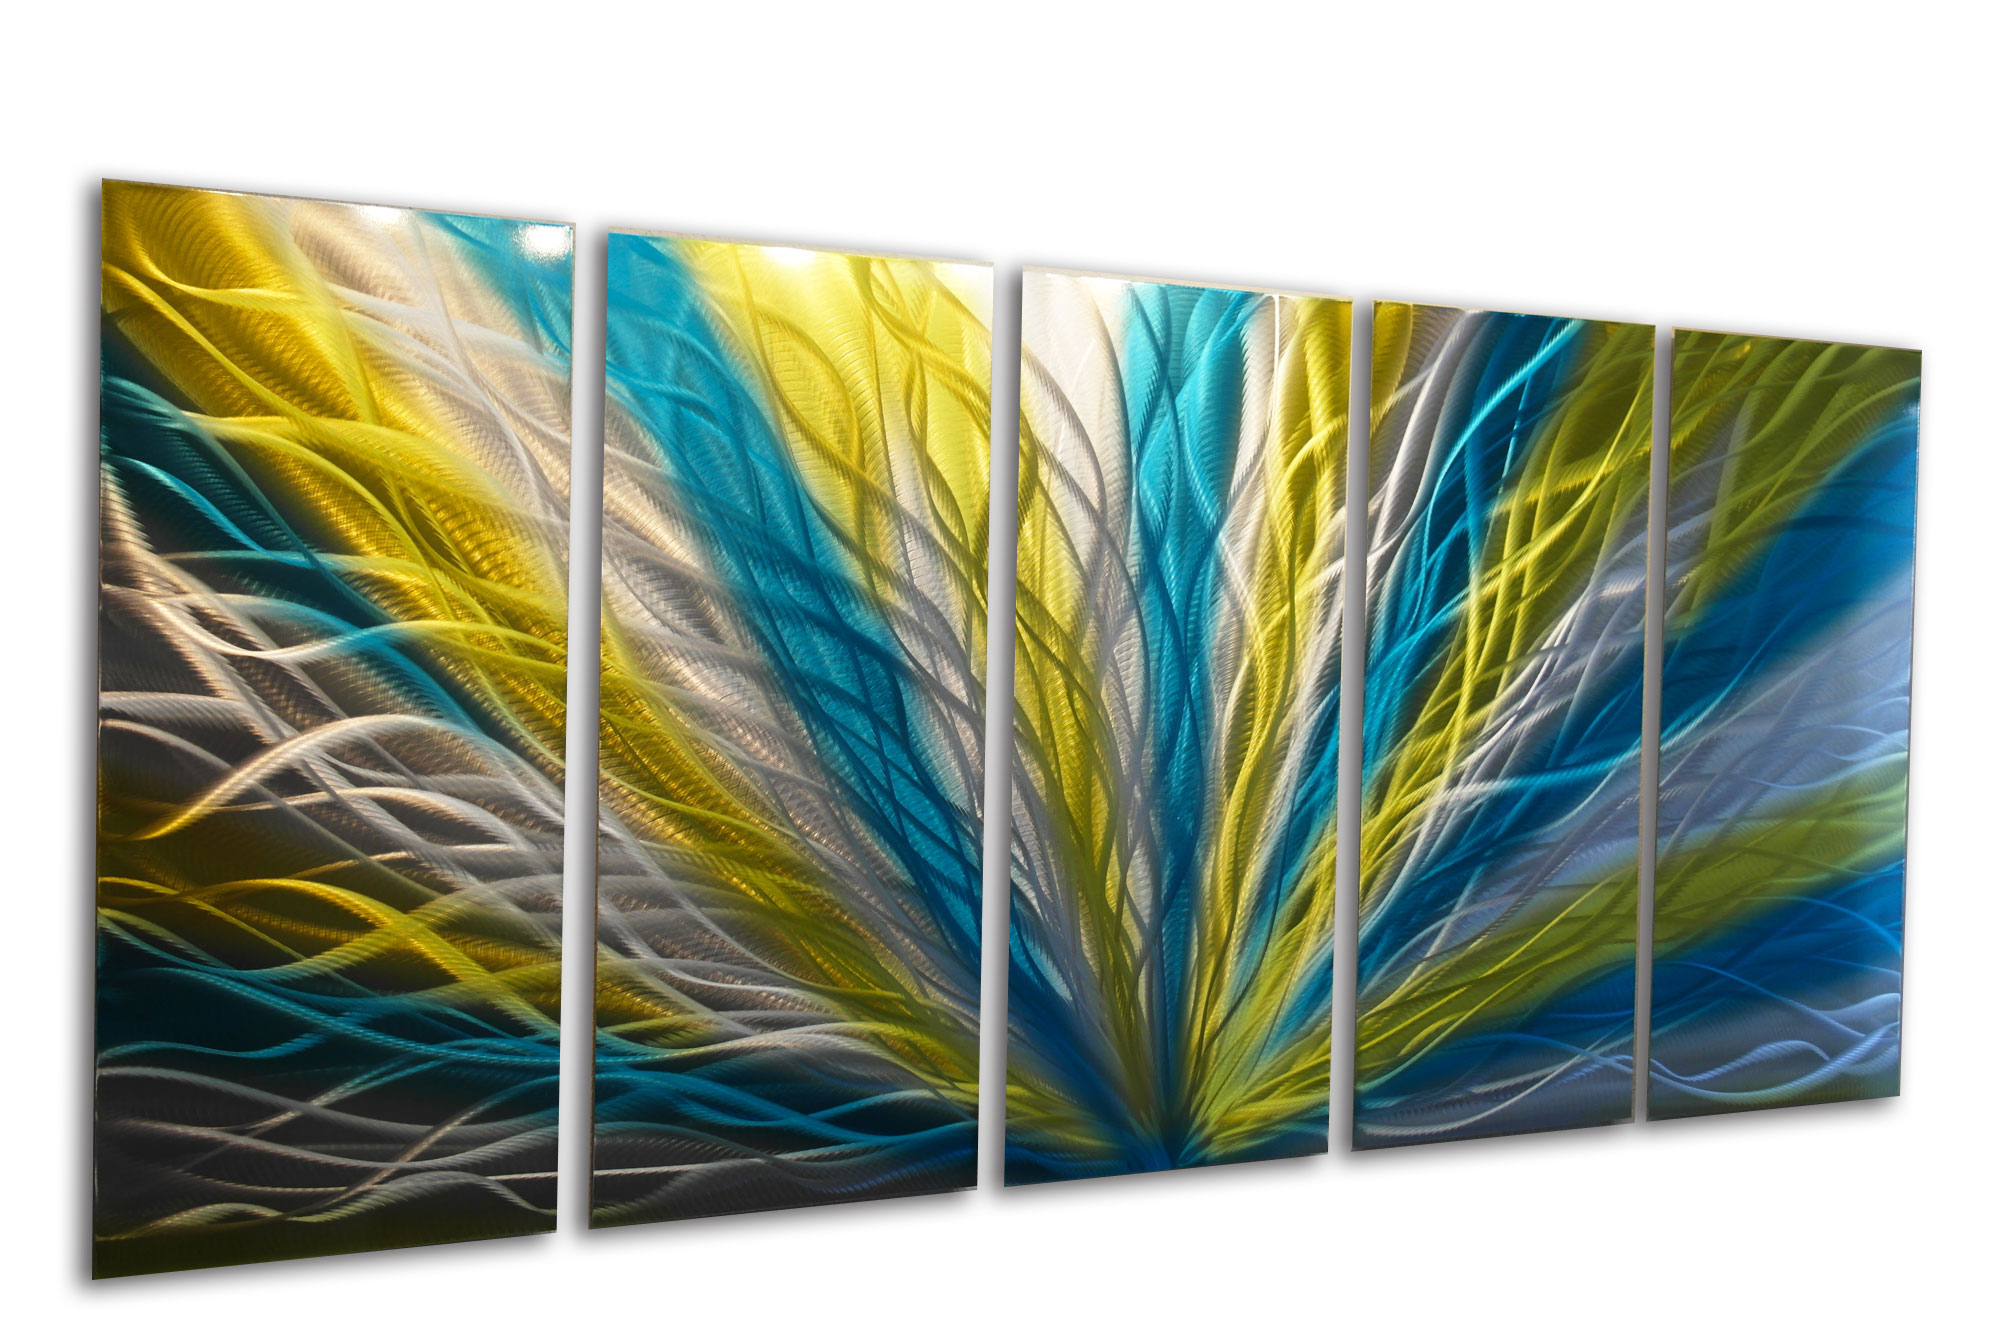 Radiance Blue Yellow 36x79   Metal Wall Art Abstract Sculpture Modern Decor